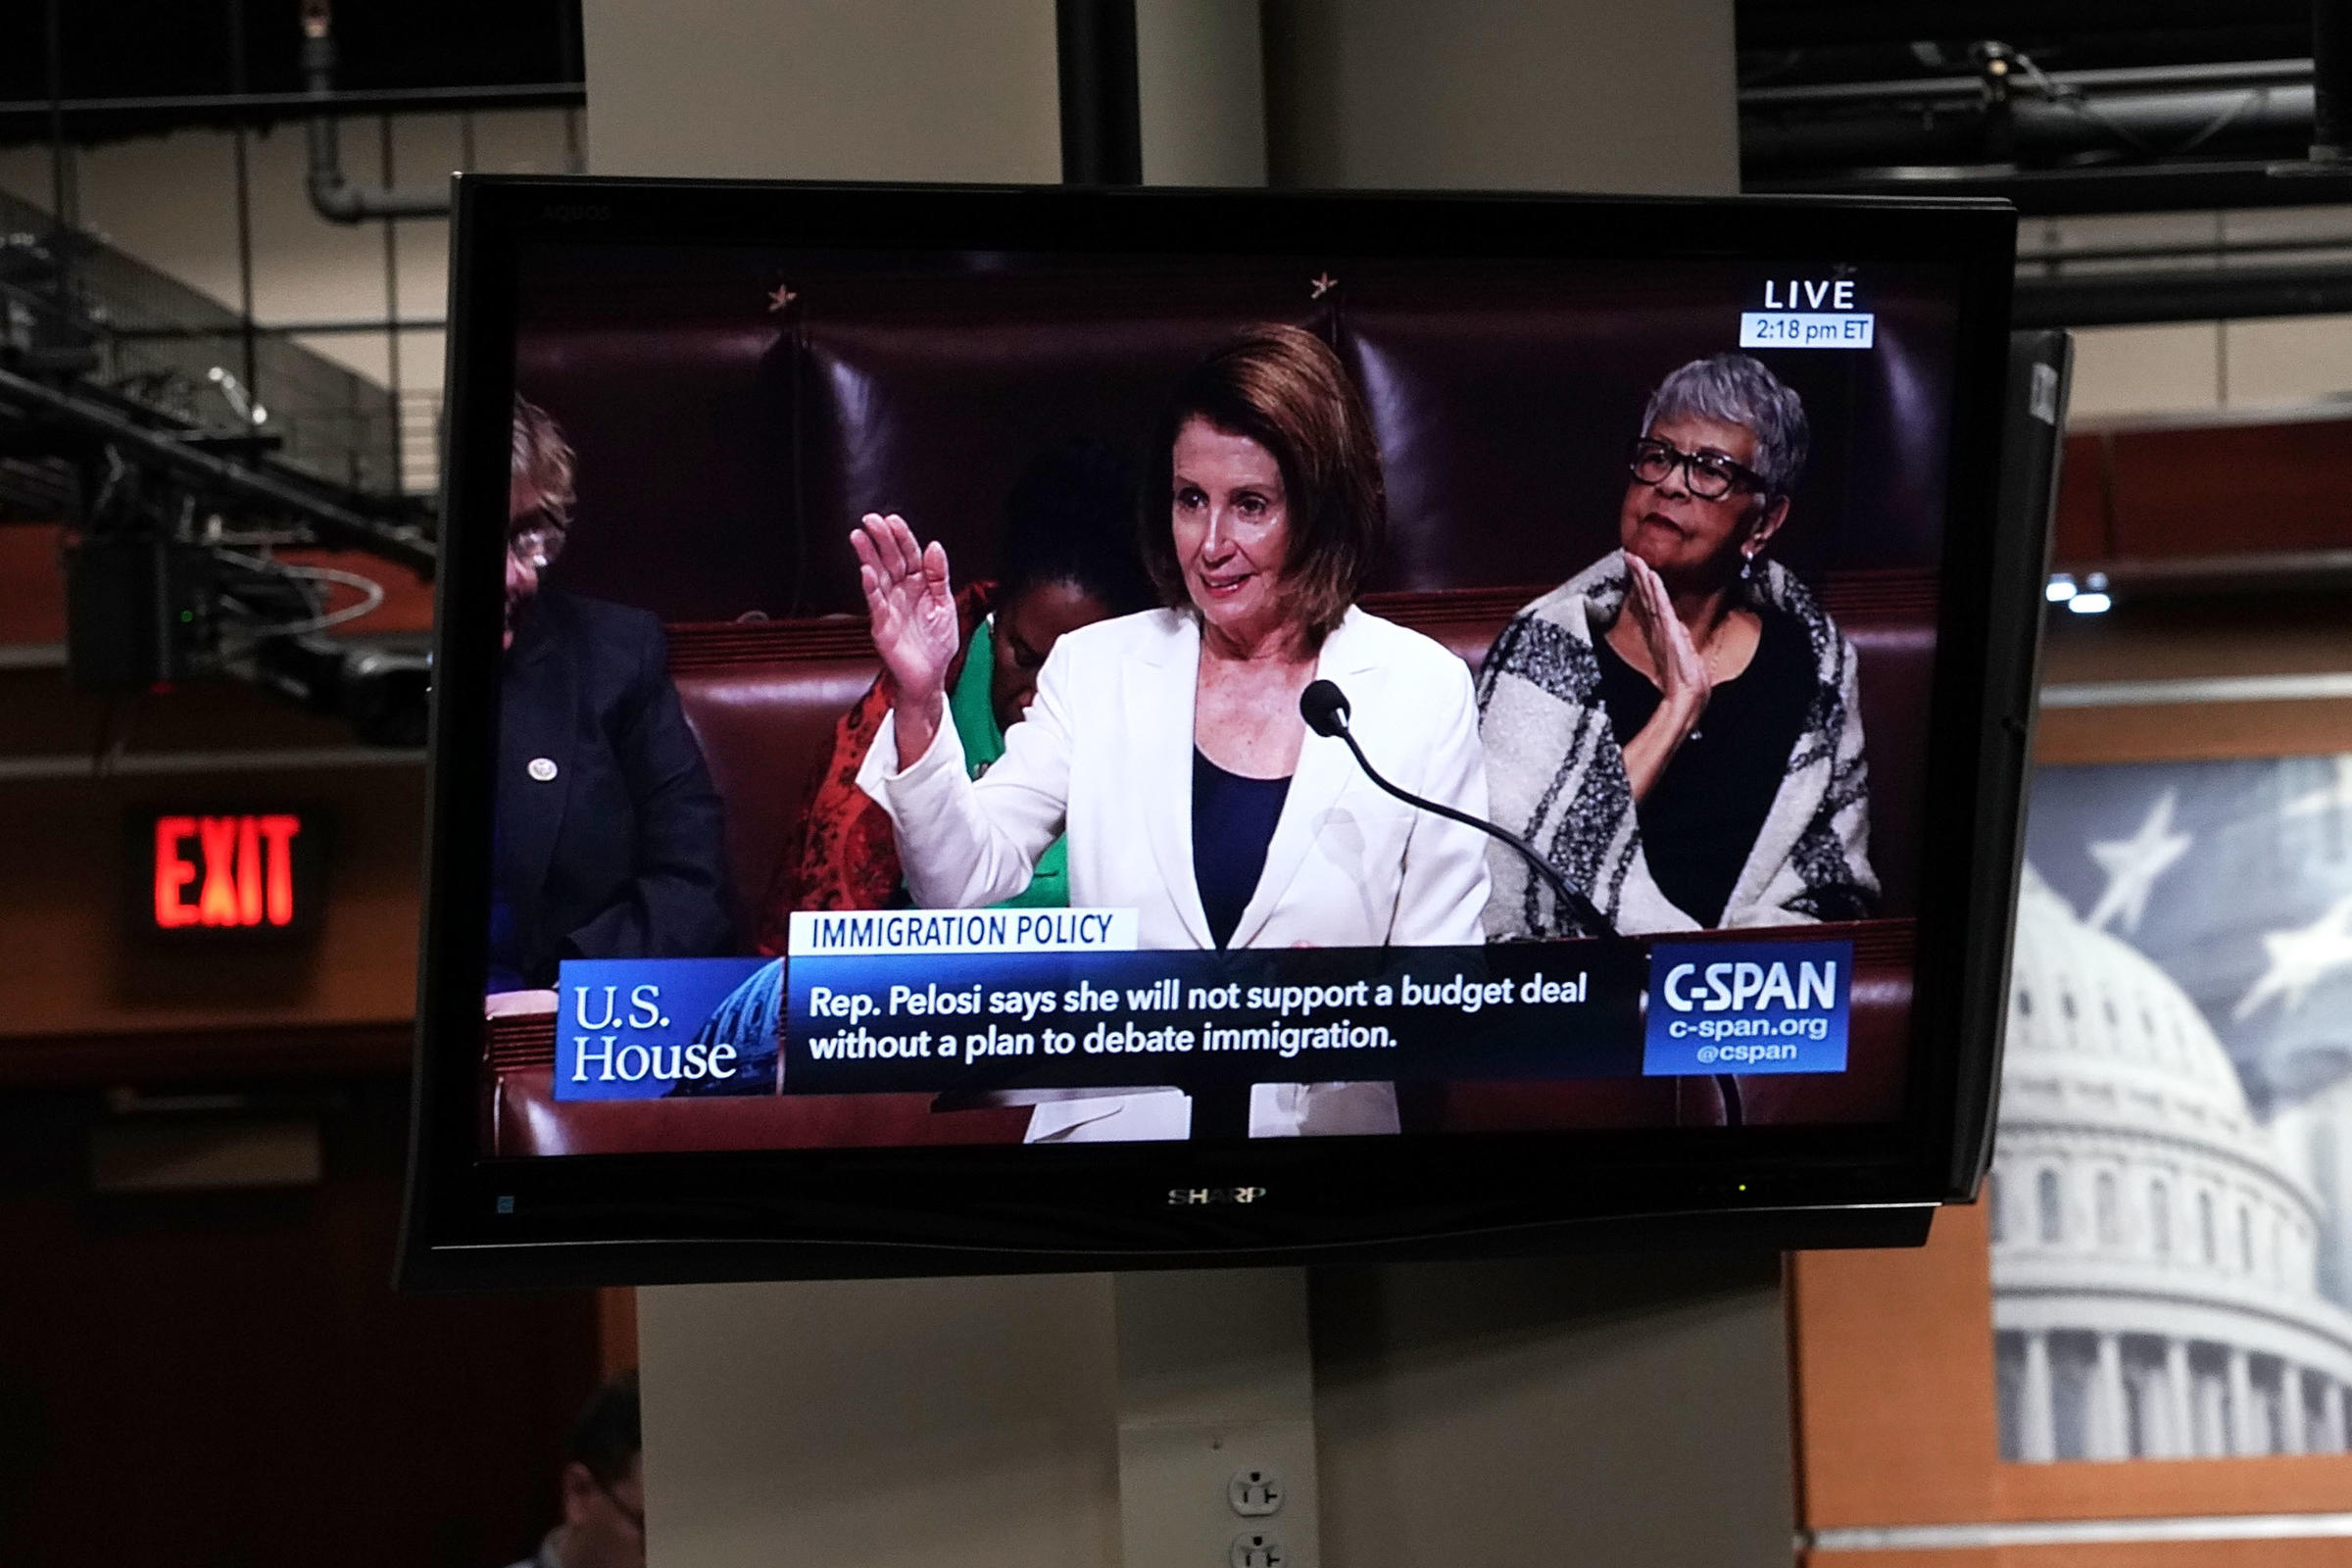 Pelosi takes to the House floor to defend Dreamers